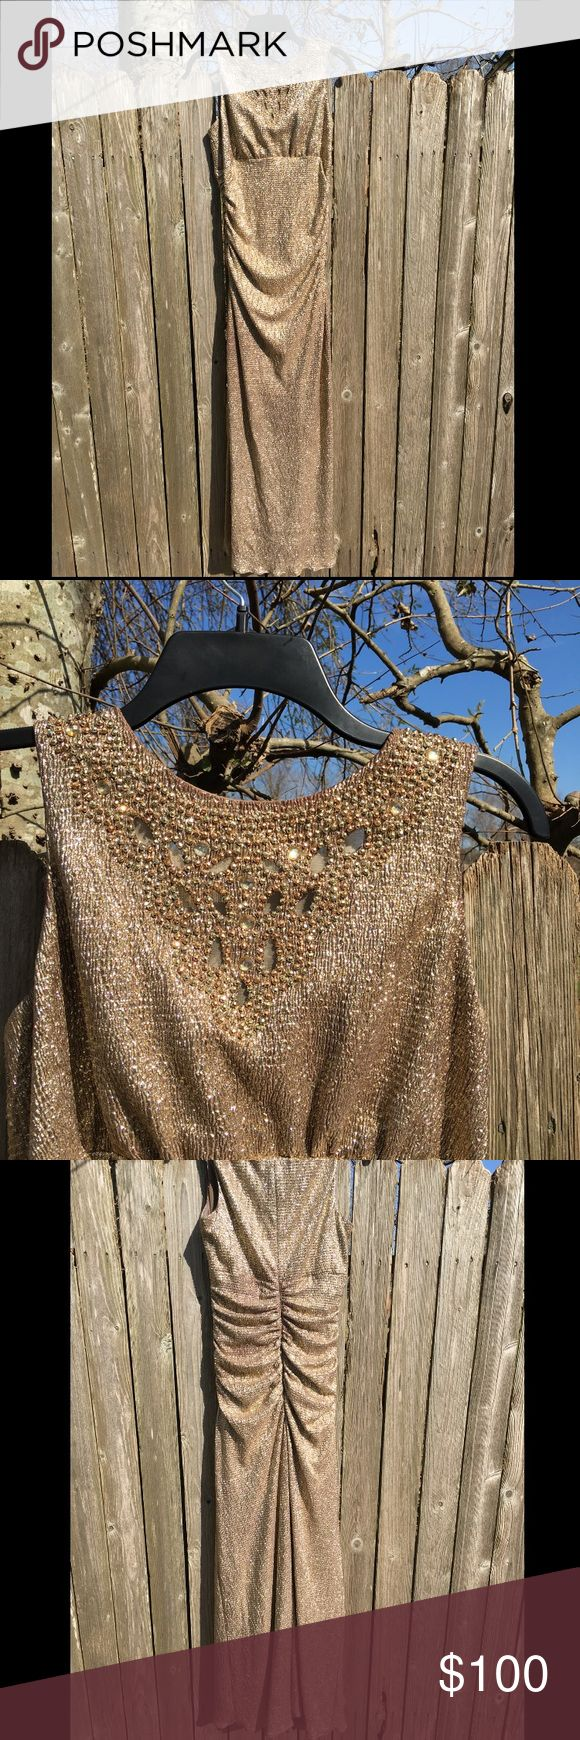 """WOMENS Gold Metallic long dress Length of dress- 60"""" Gently used in good condition Dresses"""